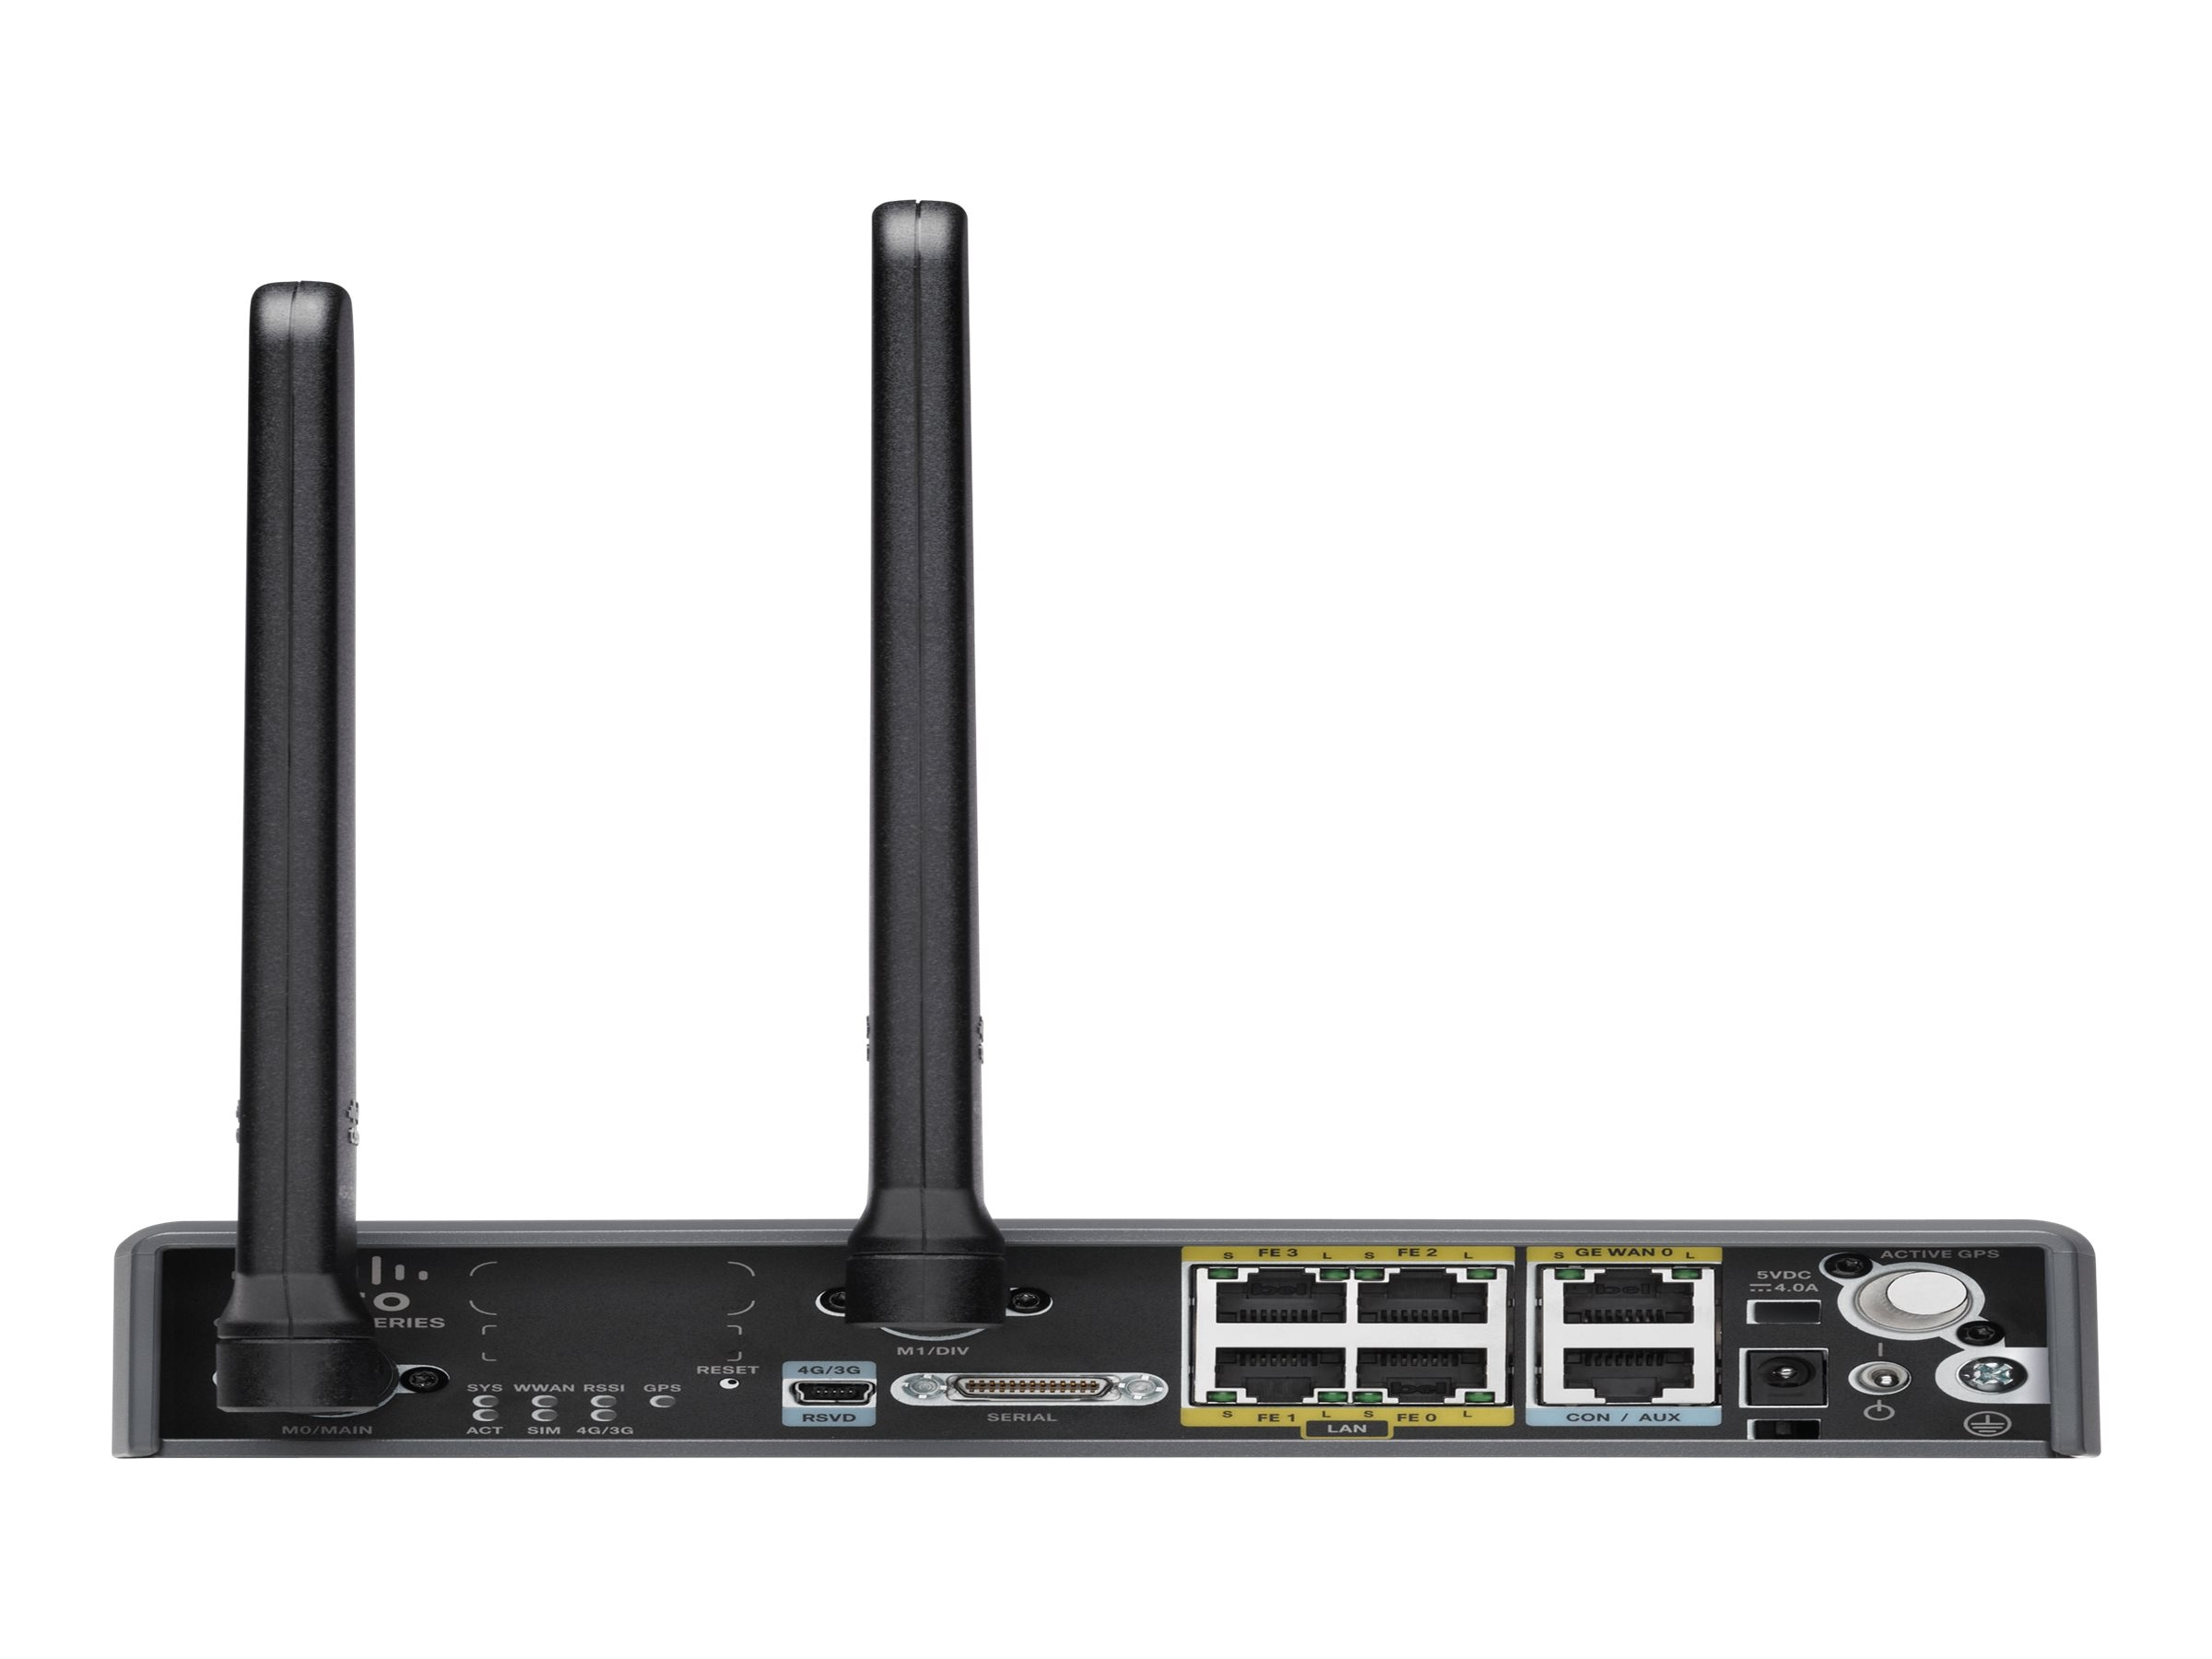 Cisco C819 Compact Hardened 4G LTE M2M Gateway fpr Verizon 700, C819HG-4G-V-K9, 15159866, Wireless Access Points & Bridges